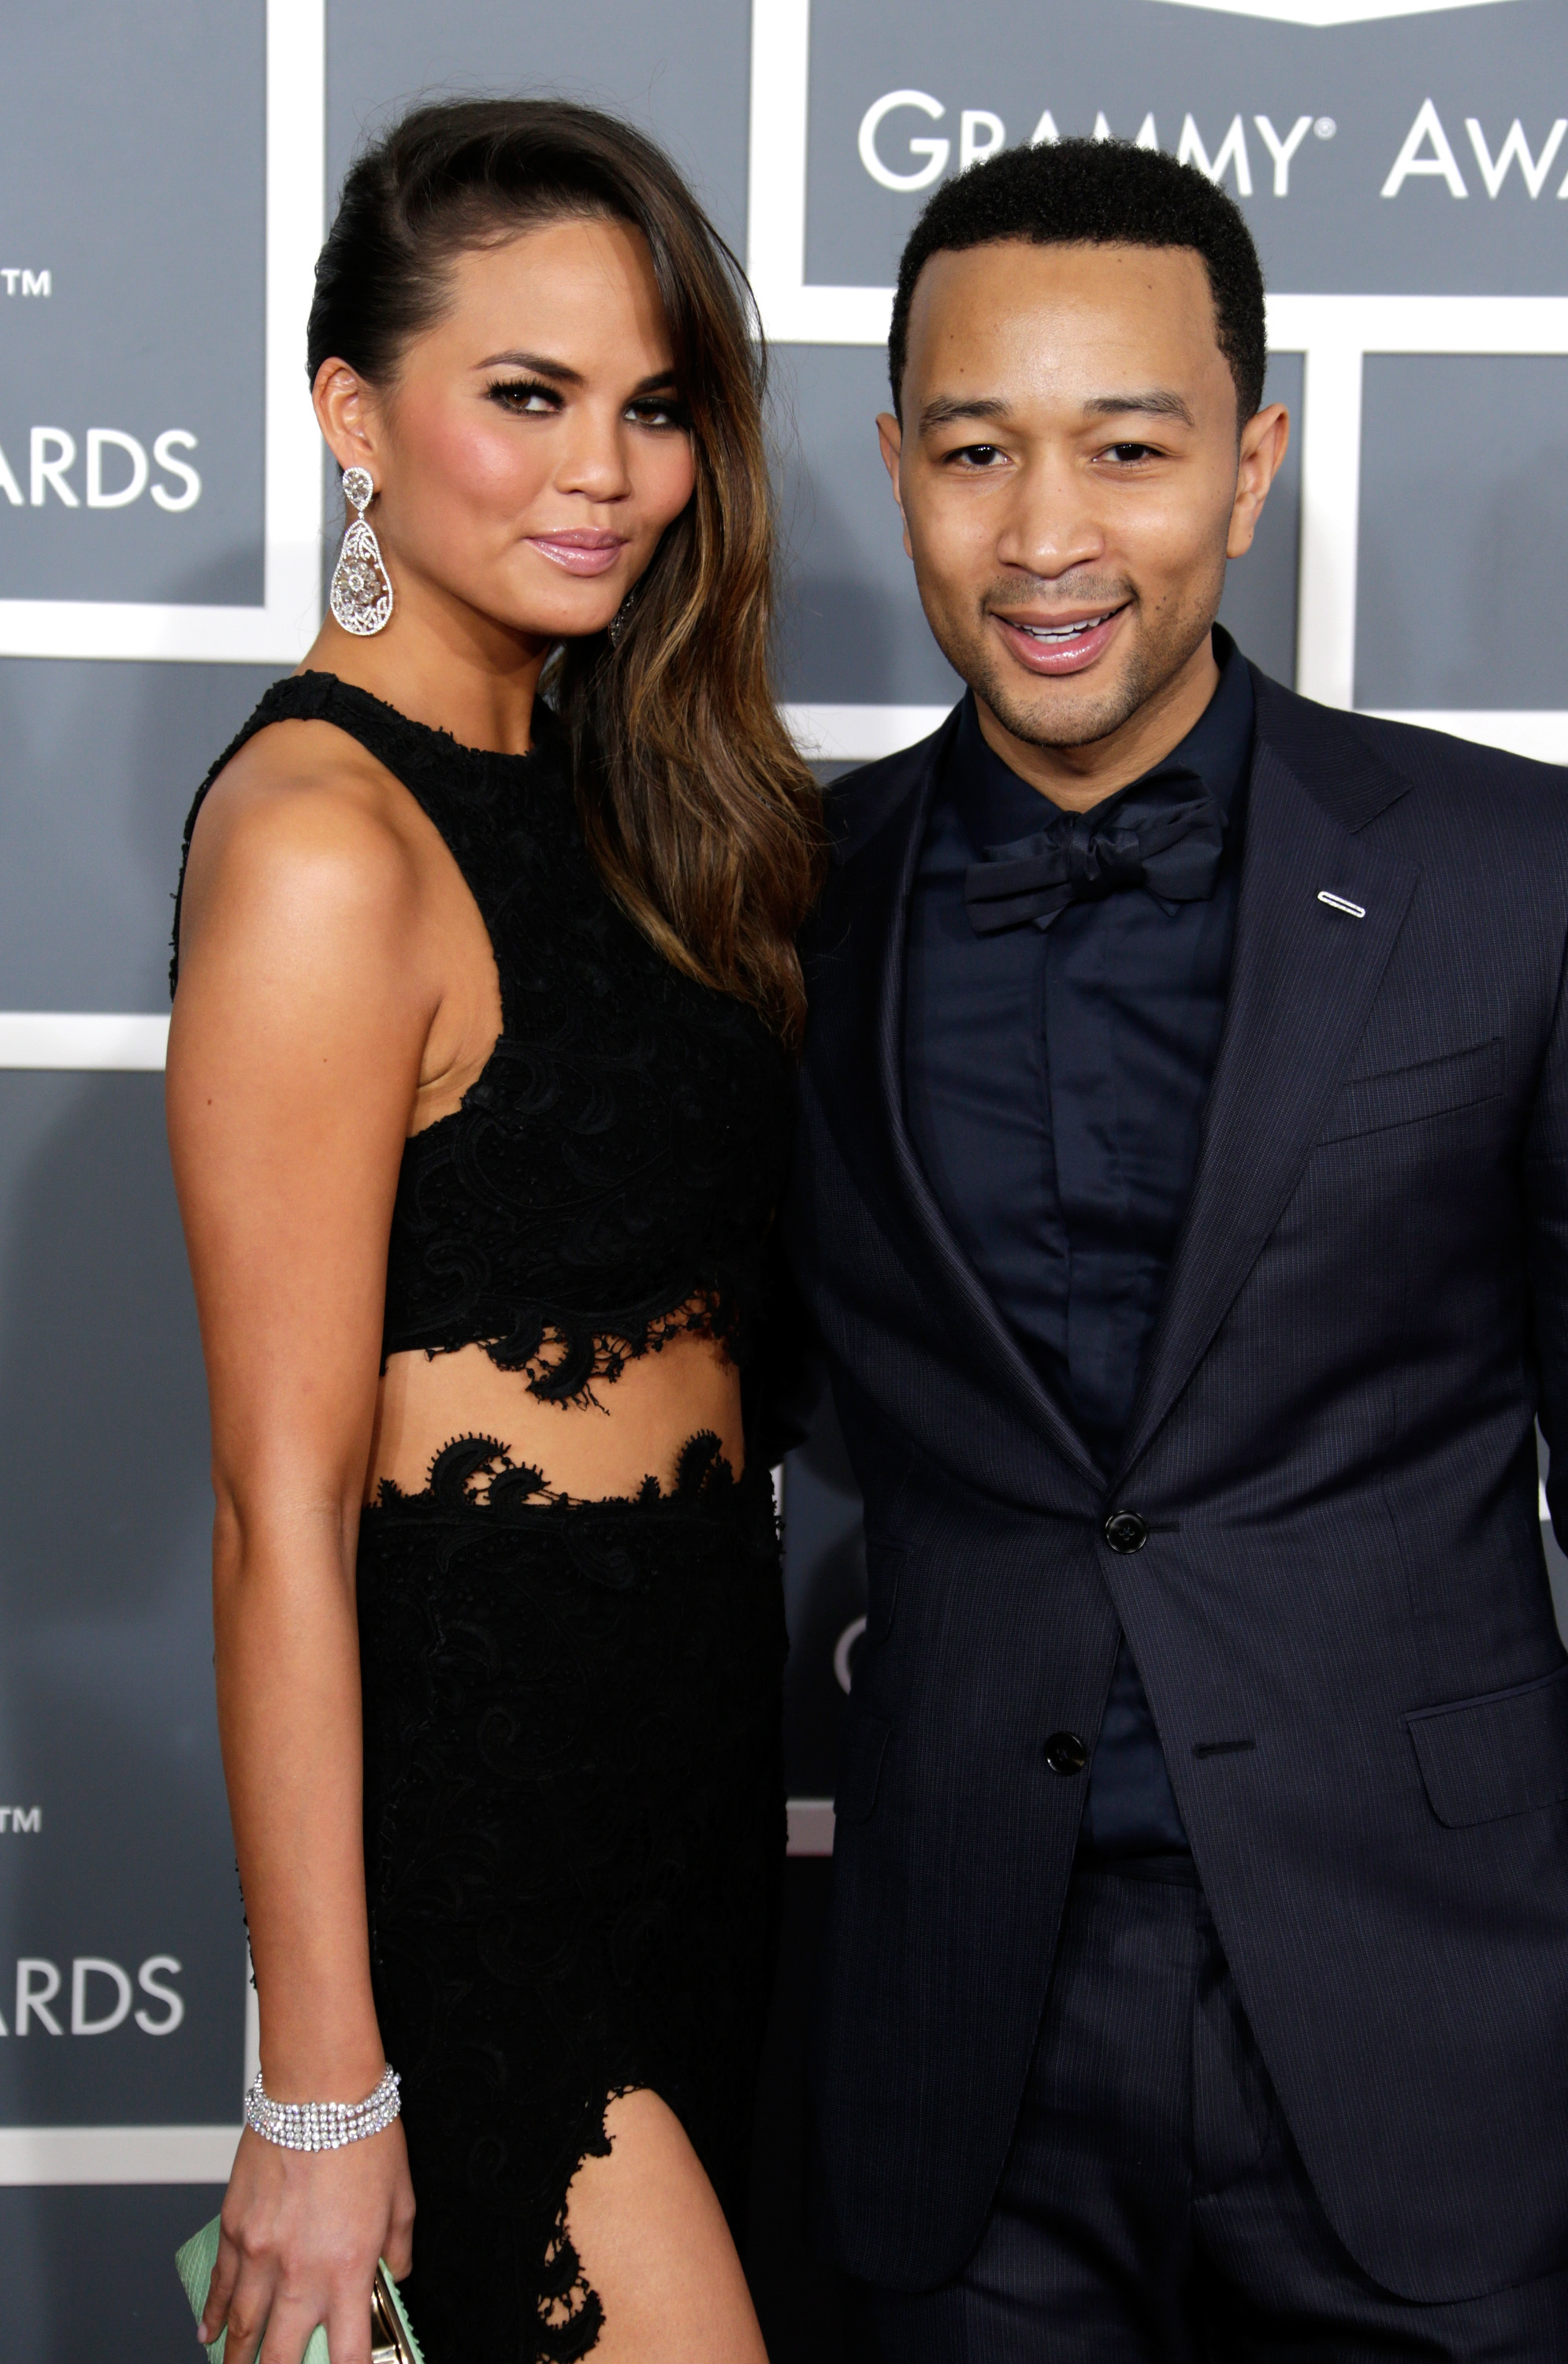 Chrissy Teigen and John Legend 2013 Grammy Awards